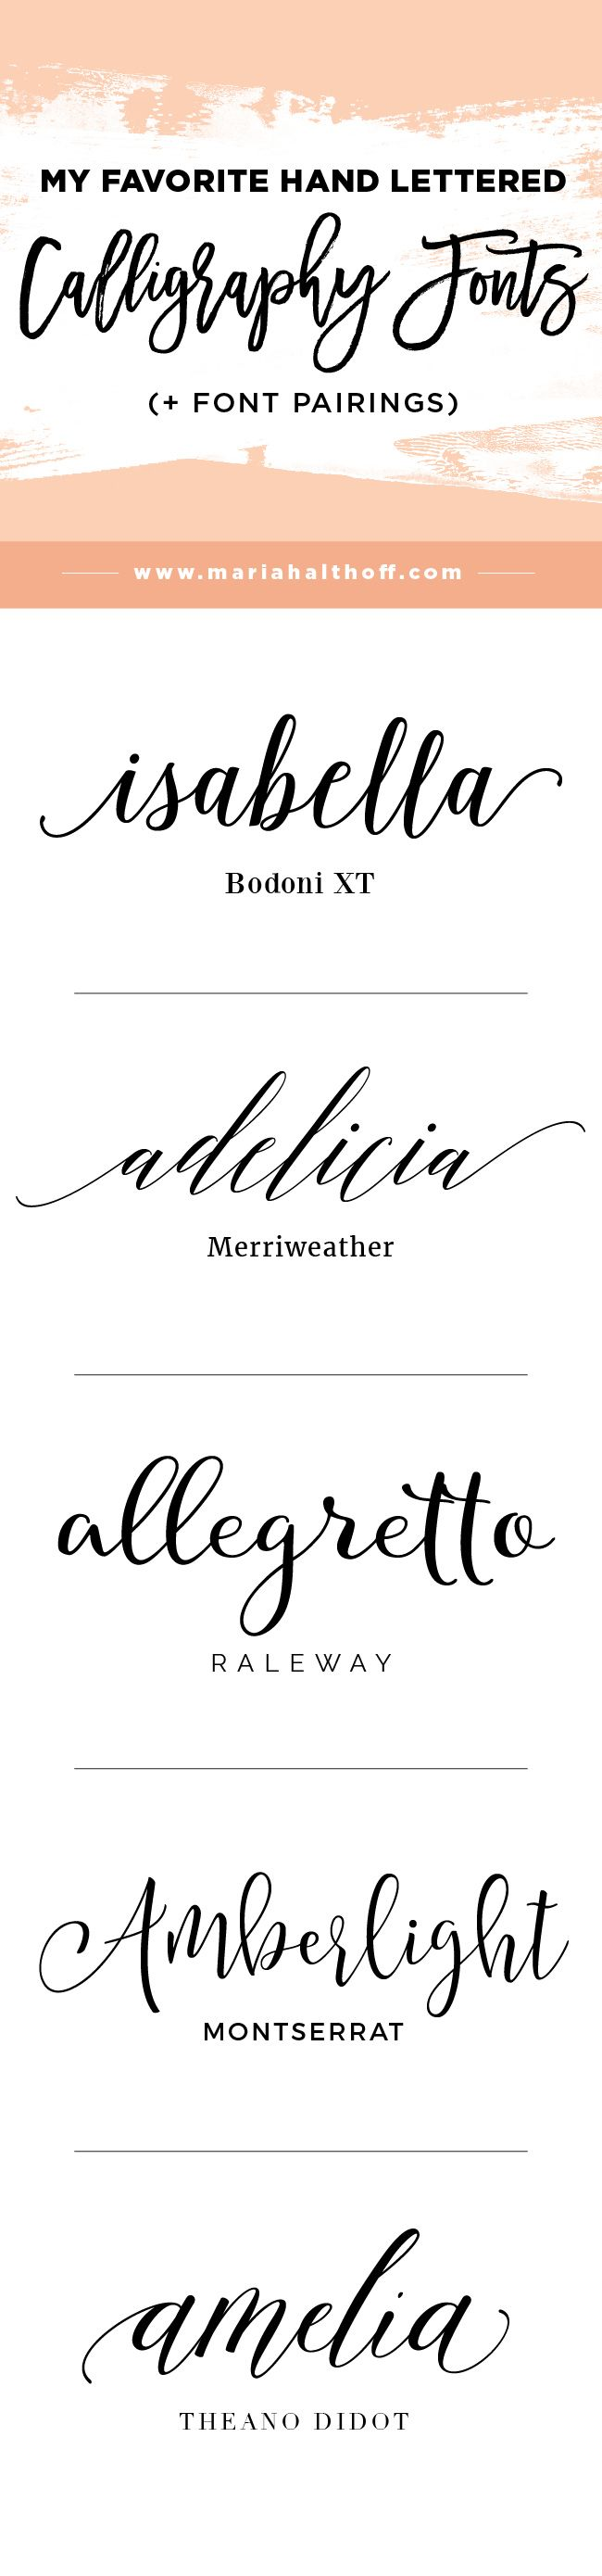 My Top 5 Favorite Hand Lettered Calligraphy Fonts (+ Font